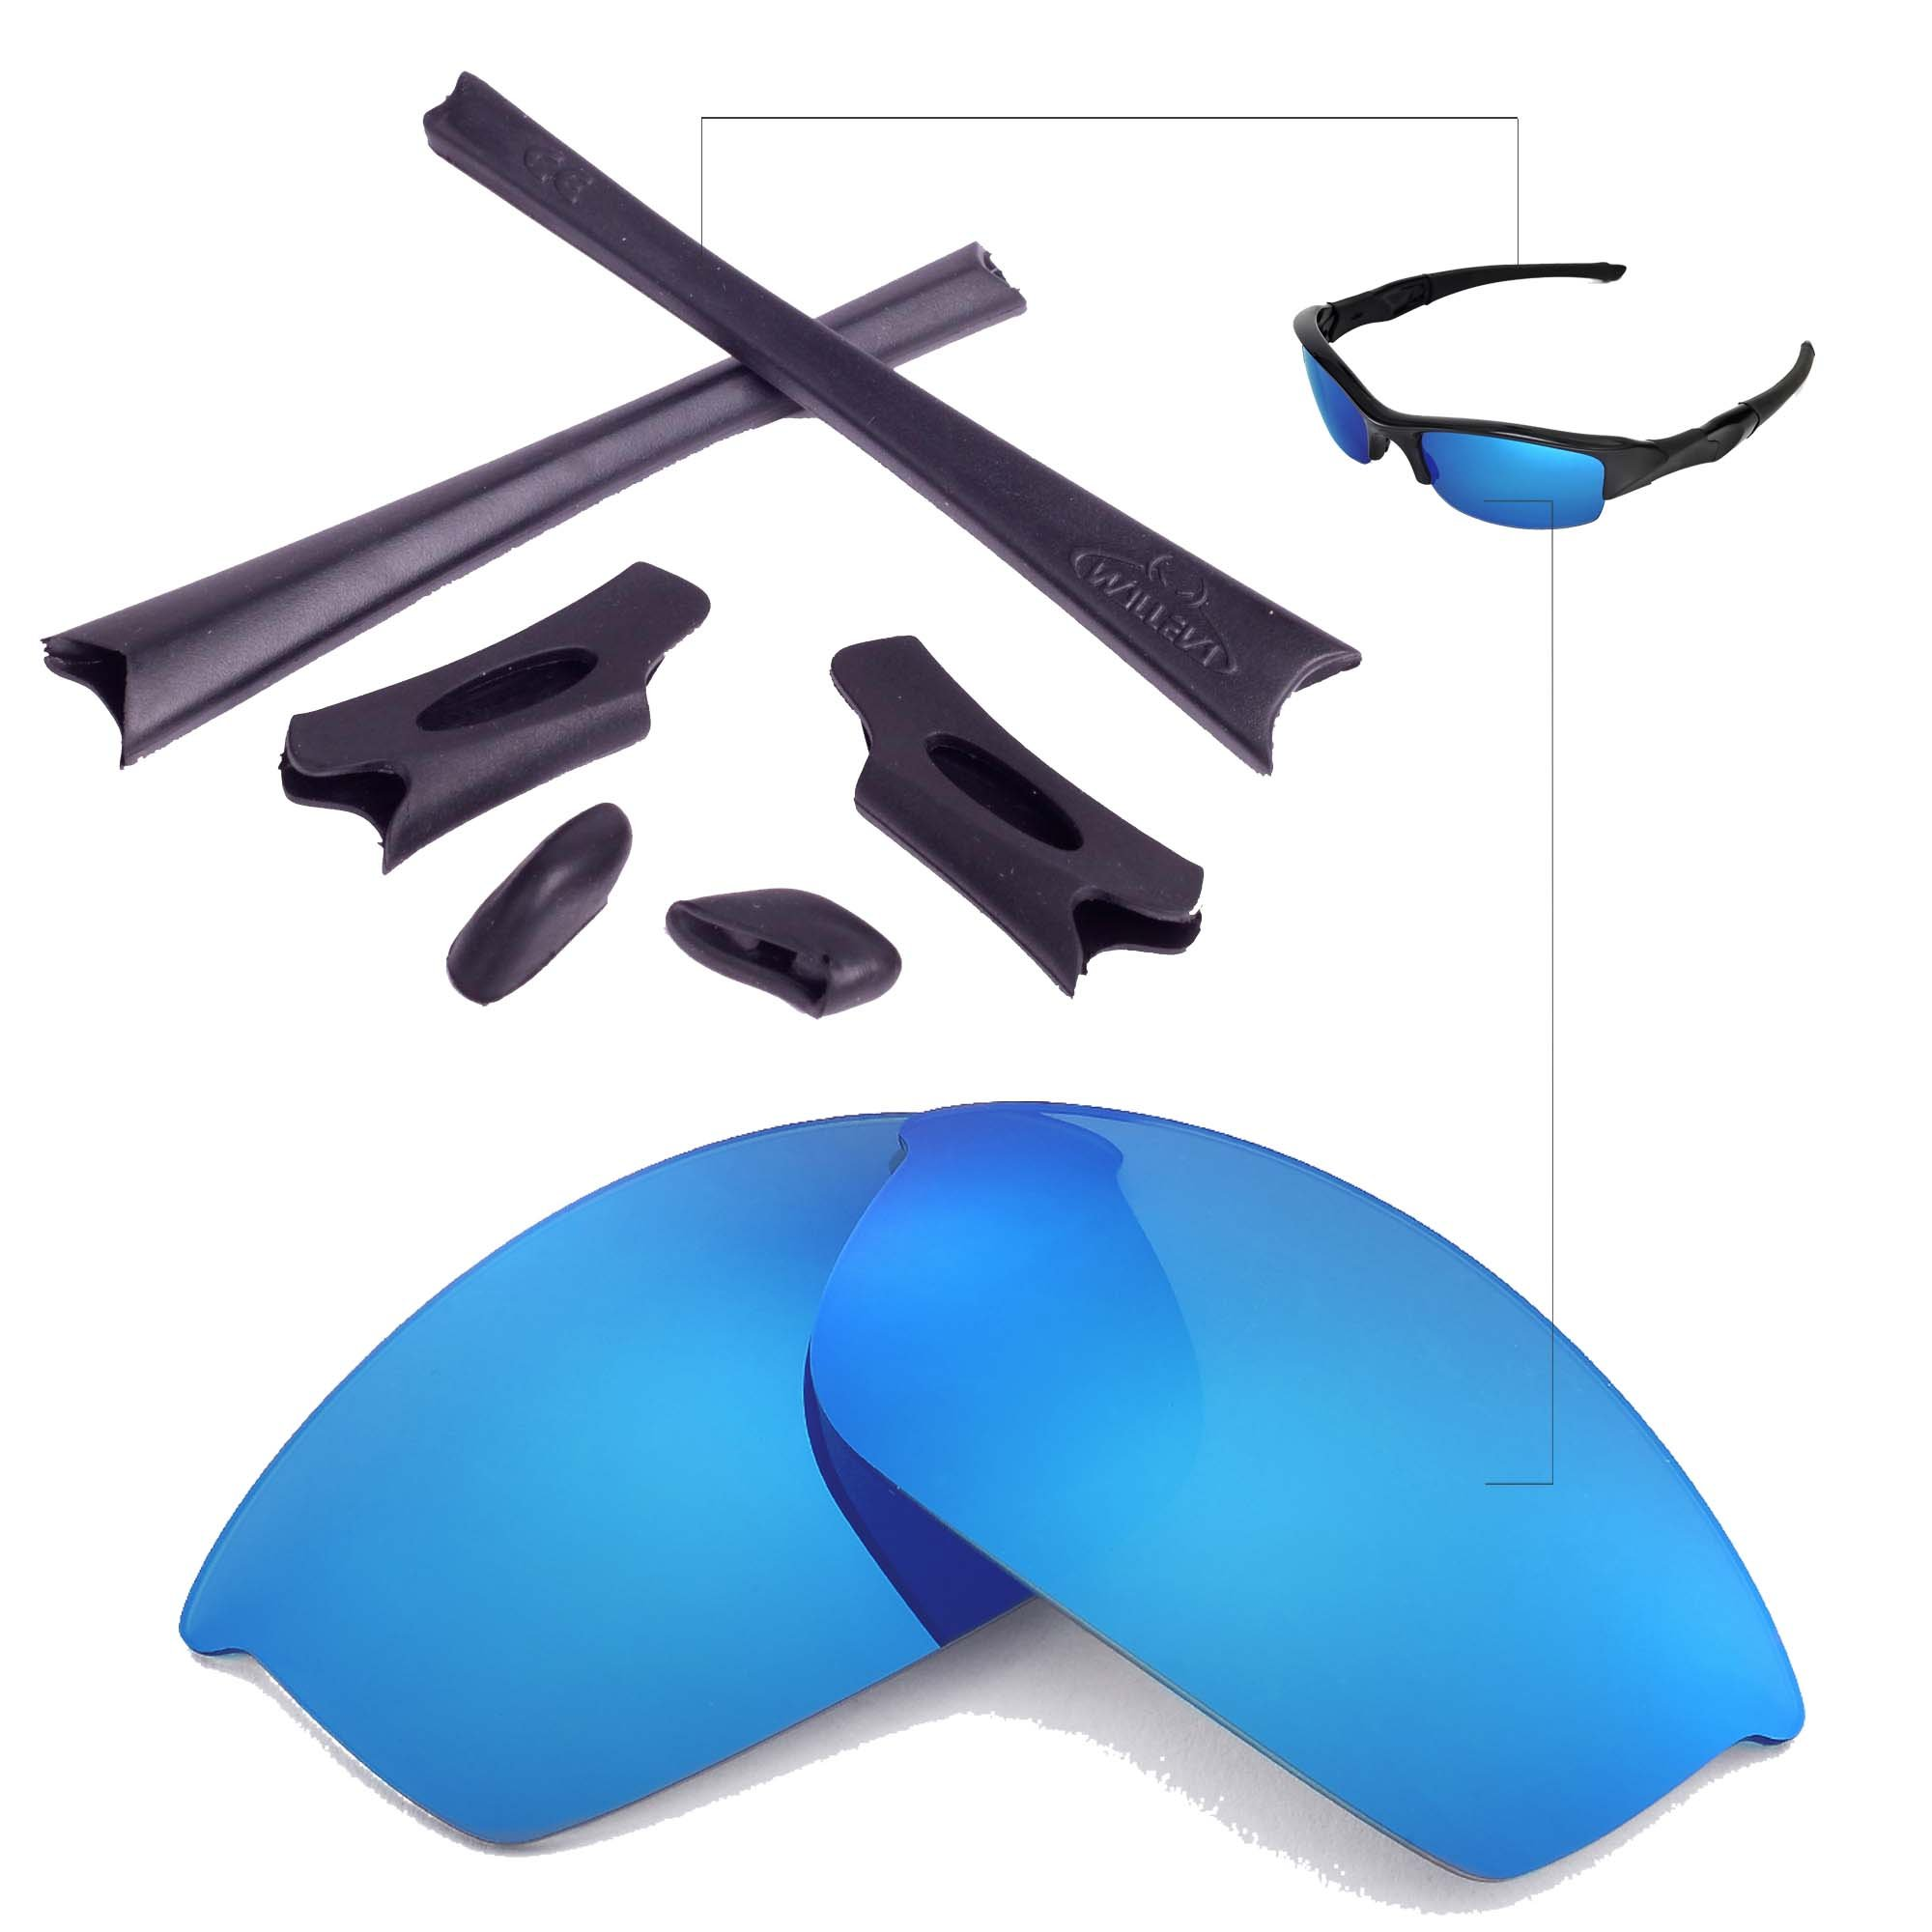 Walleva Replacement Lenses Or Lenses/Rubber Kit for Oakley Flak Jacket Sunglasses - 26 Options Available (Ice Blue Non-Polarized Lenses + Black Rubber) by Walleva